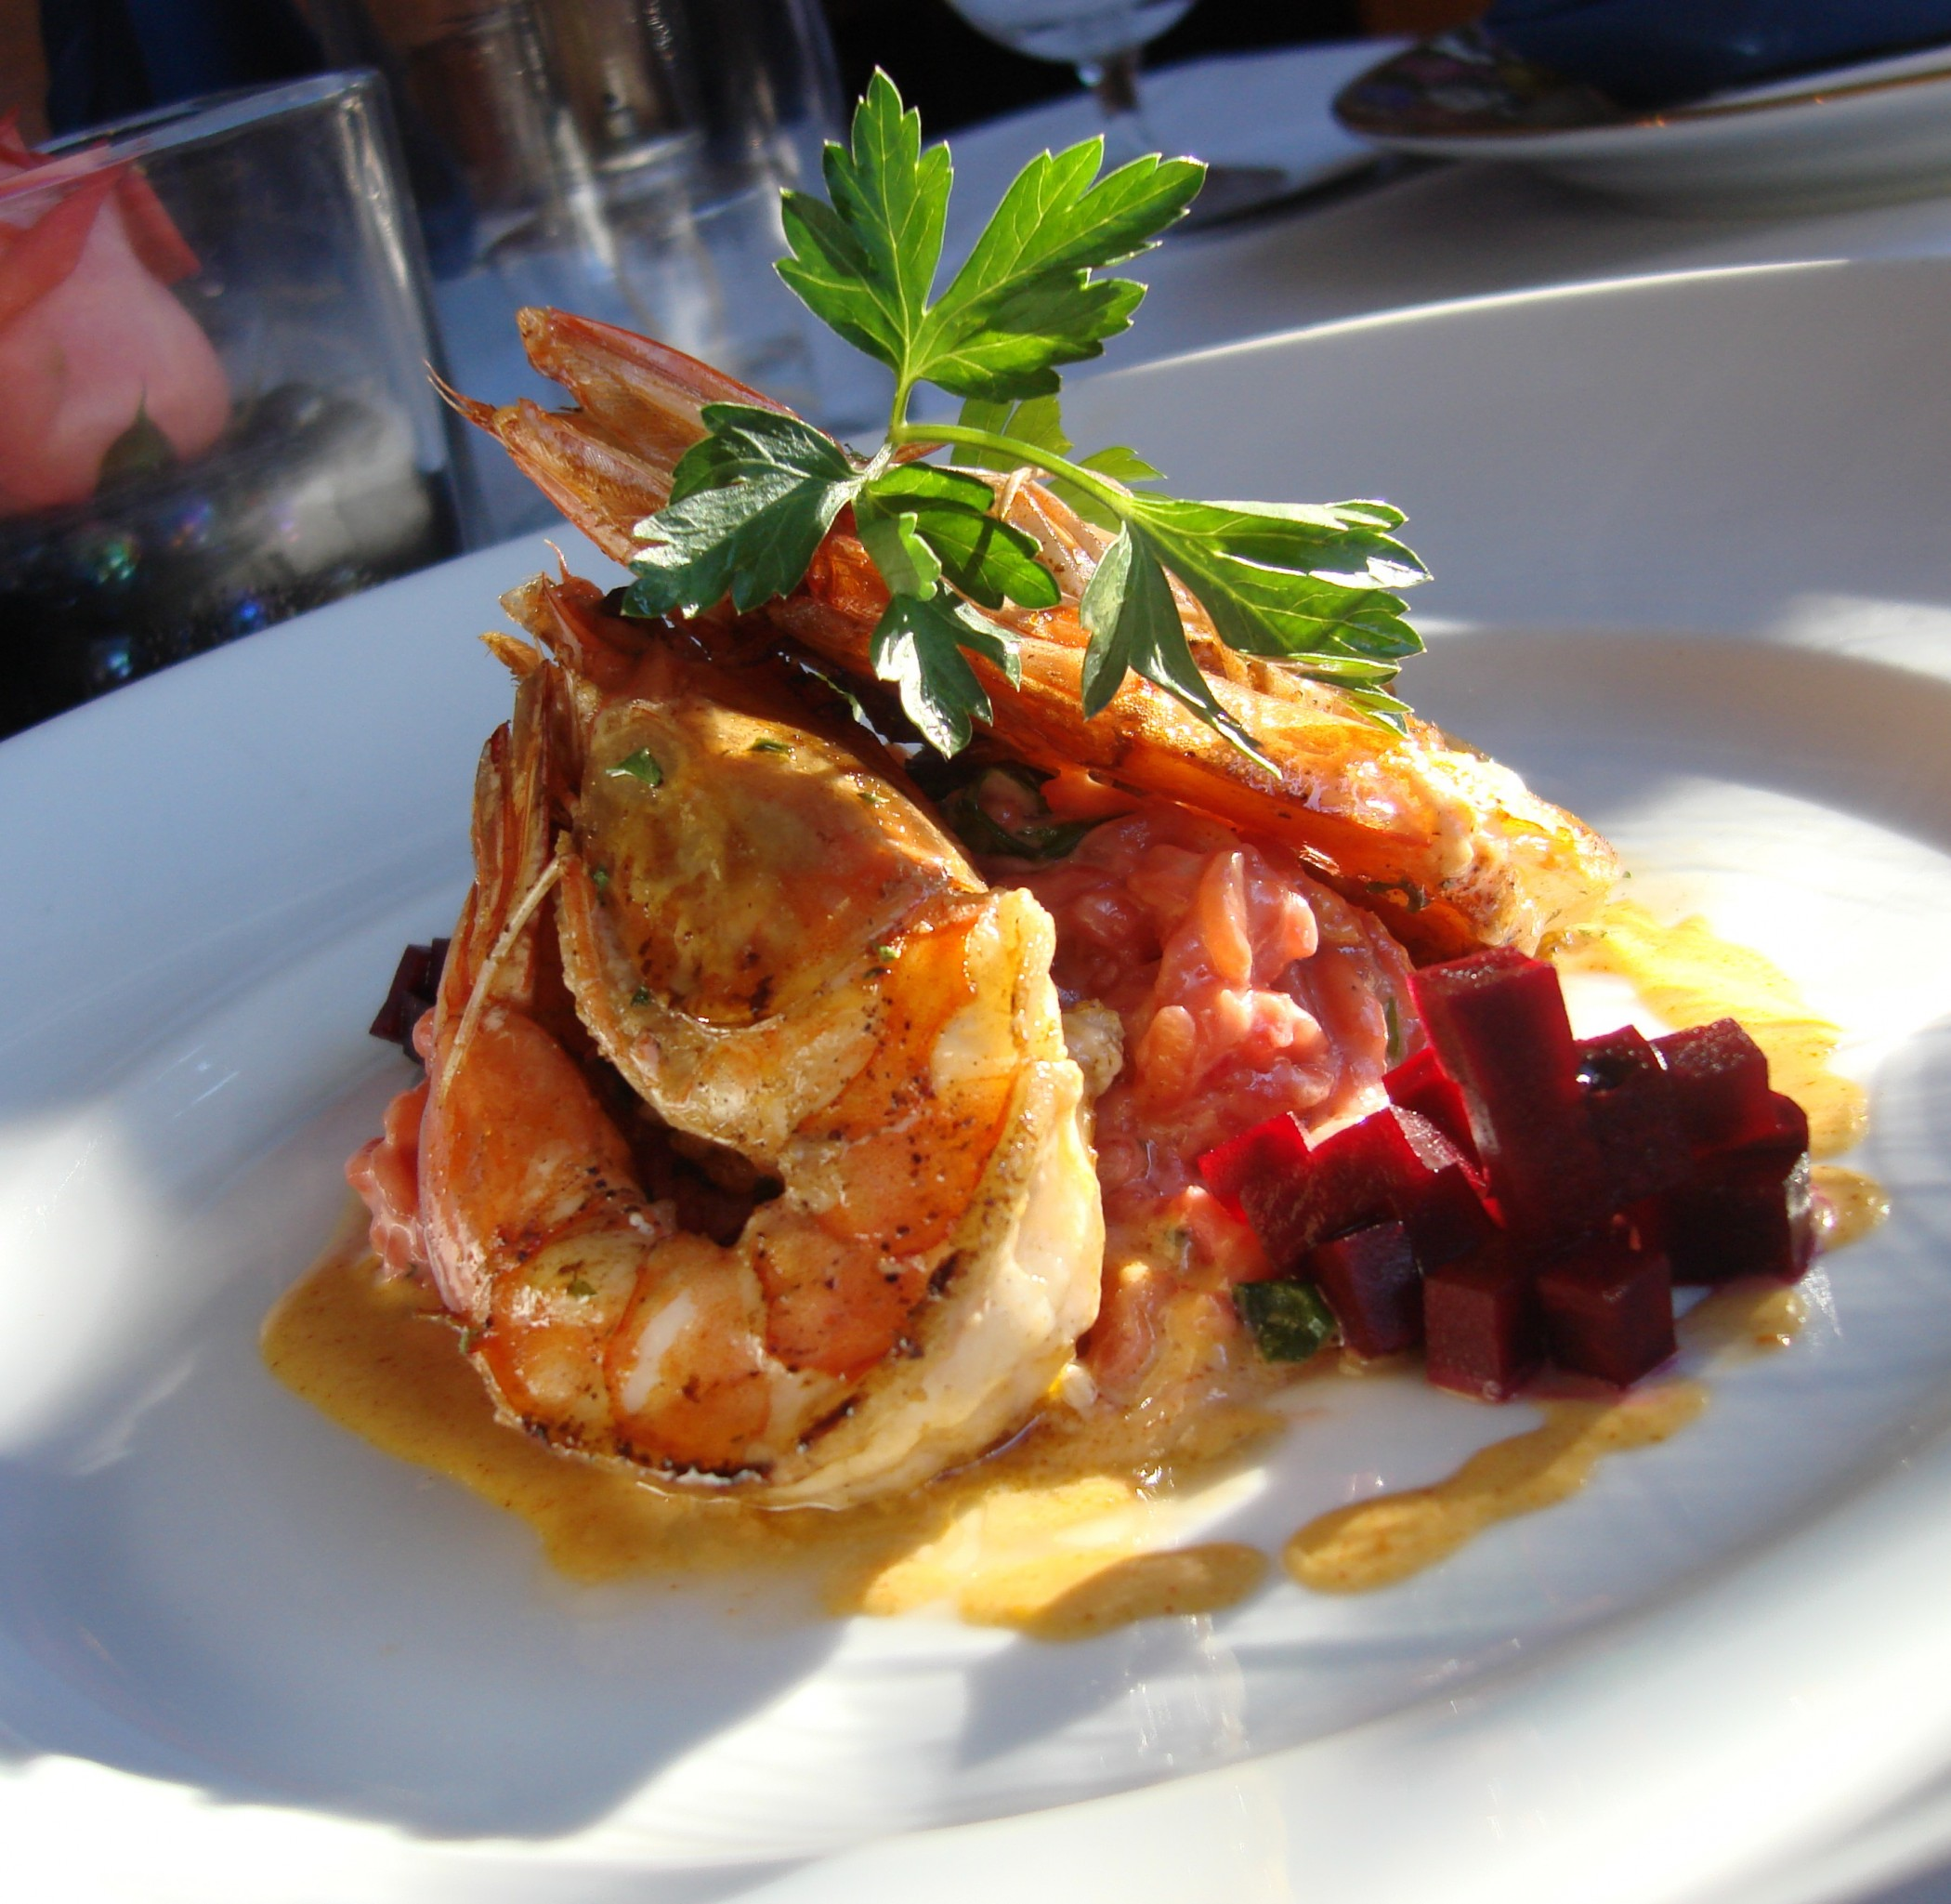 Pan-seared fresh Kauai prawns with beet risotto at Chef Chai